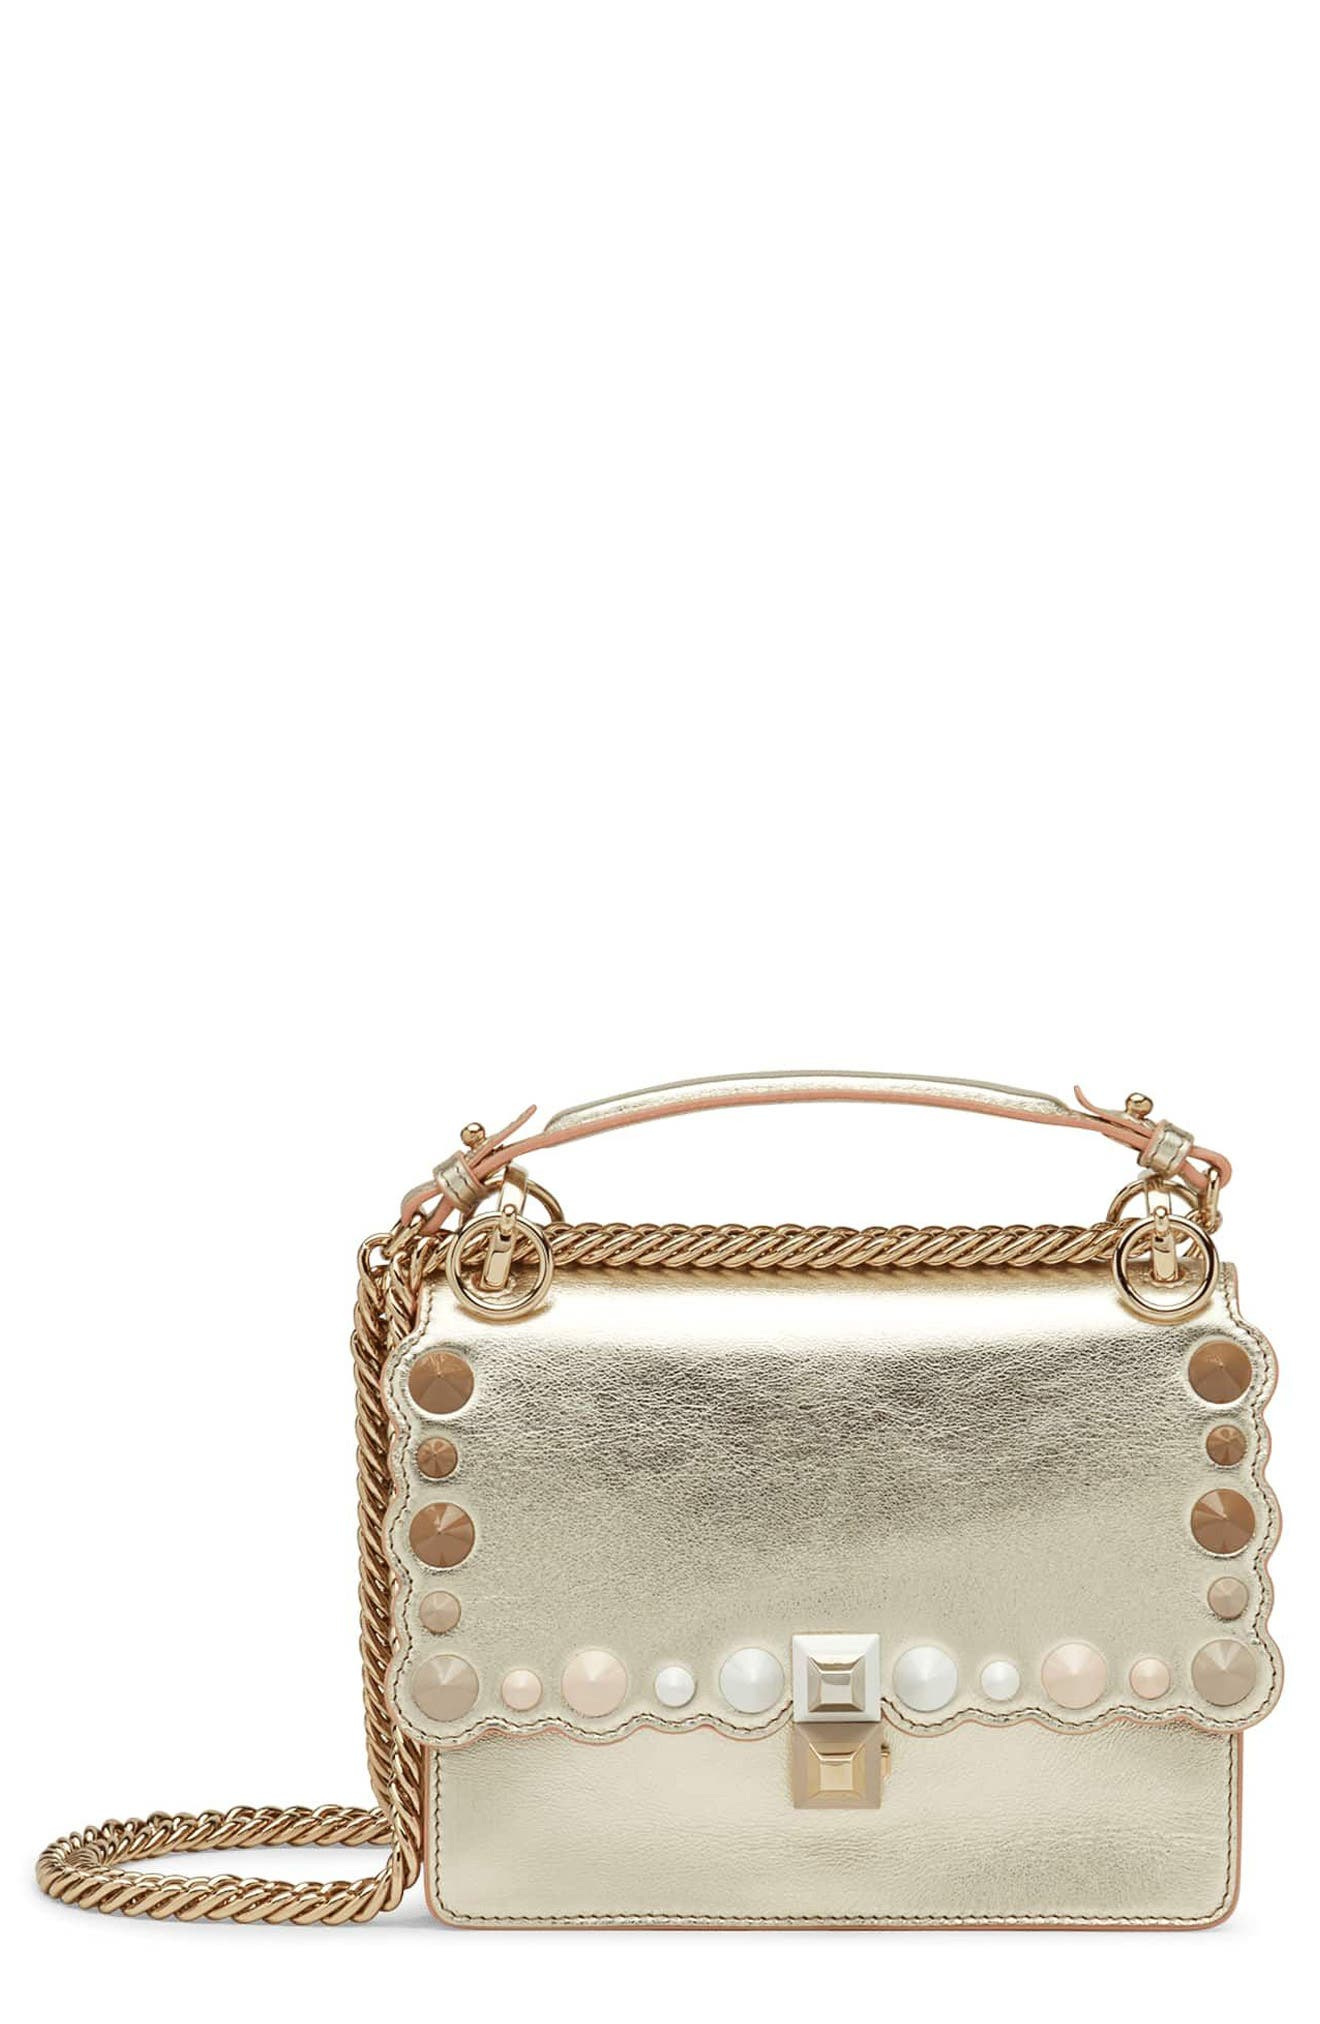 Small Kan I Metallic Leather Shoulder Bag,                         Main,                         color, CHAMPAGNE/ ORO